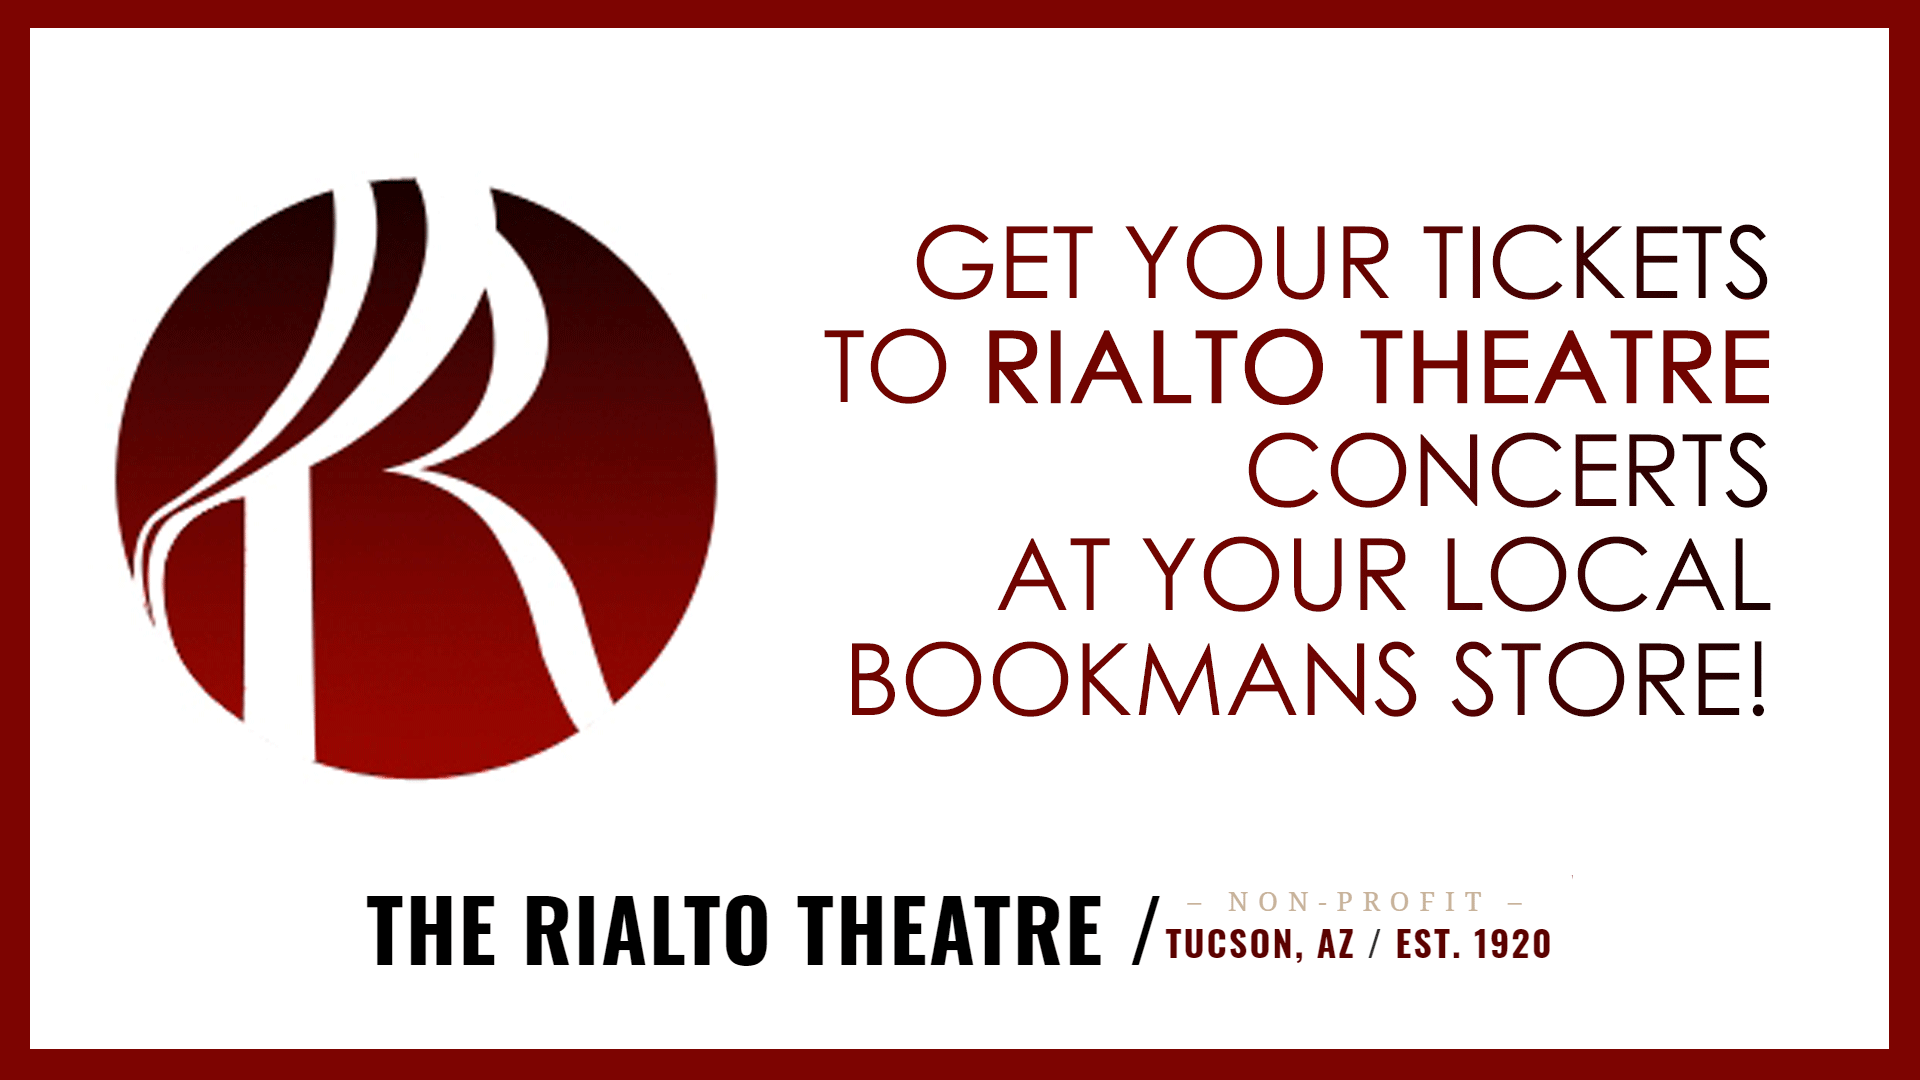 Rialto Theatre logo and reminder that Bookmans sells these concert tickets